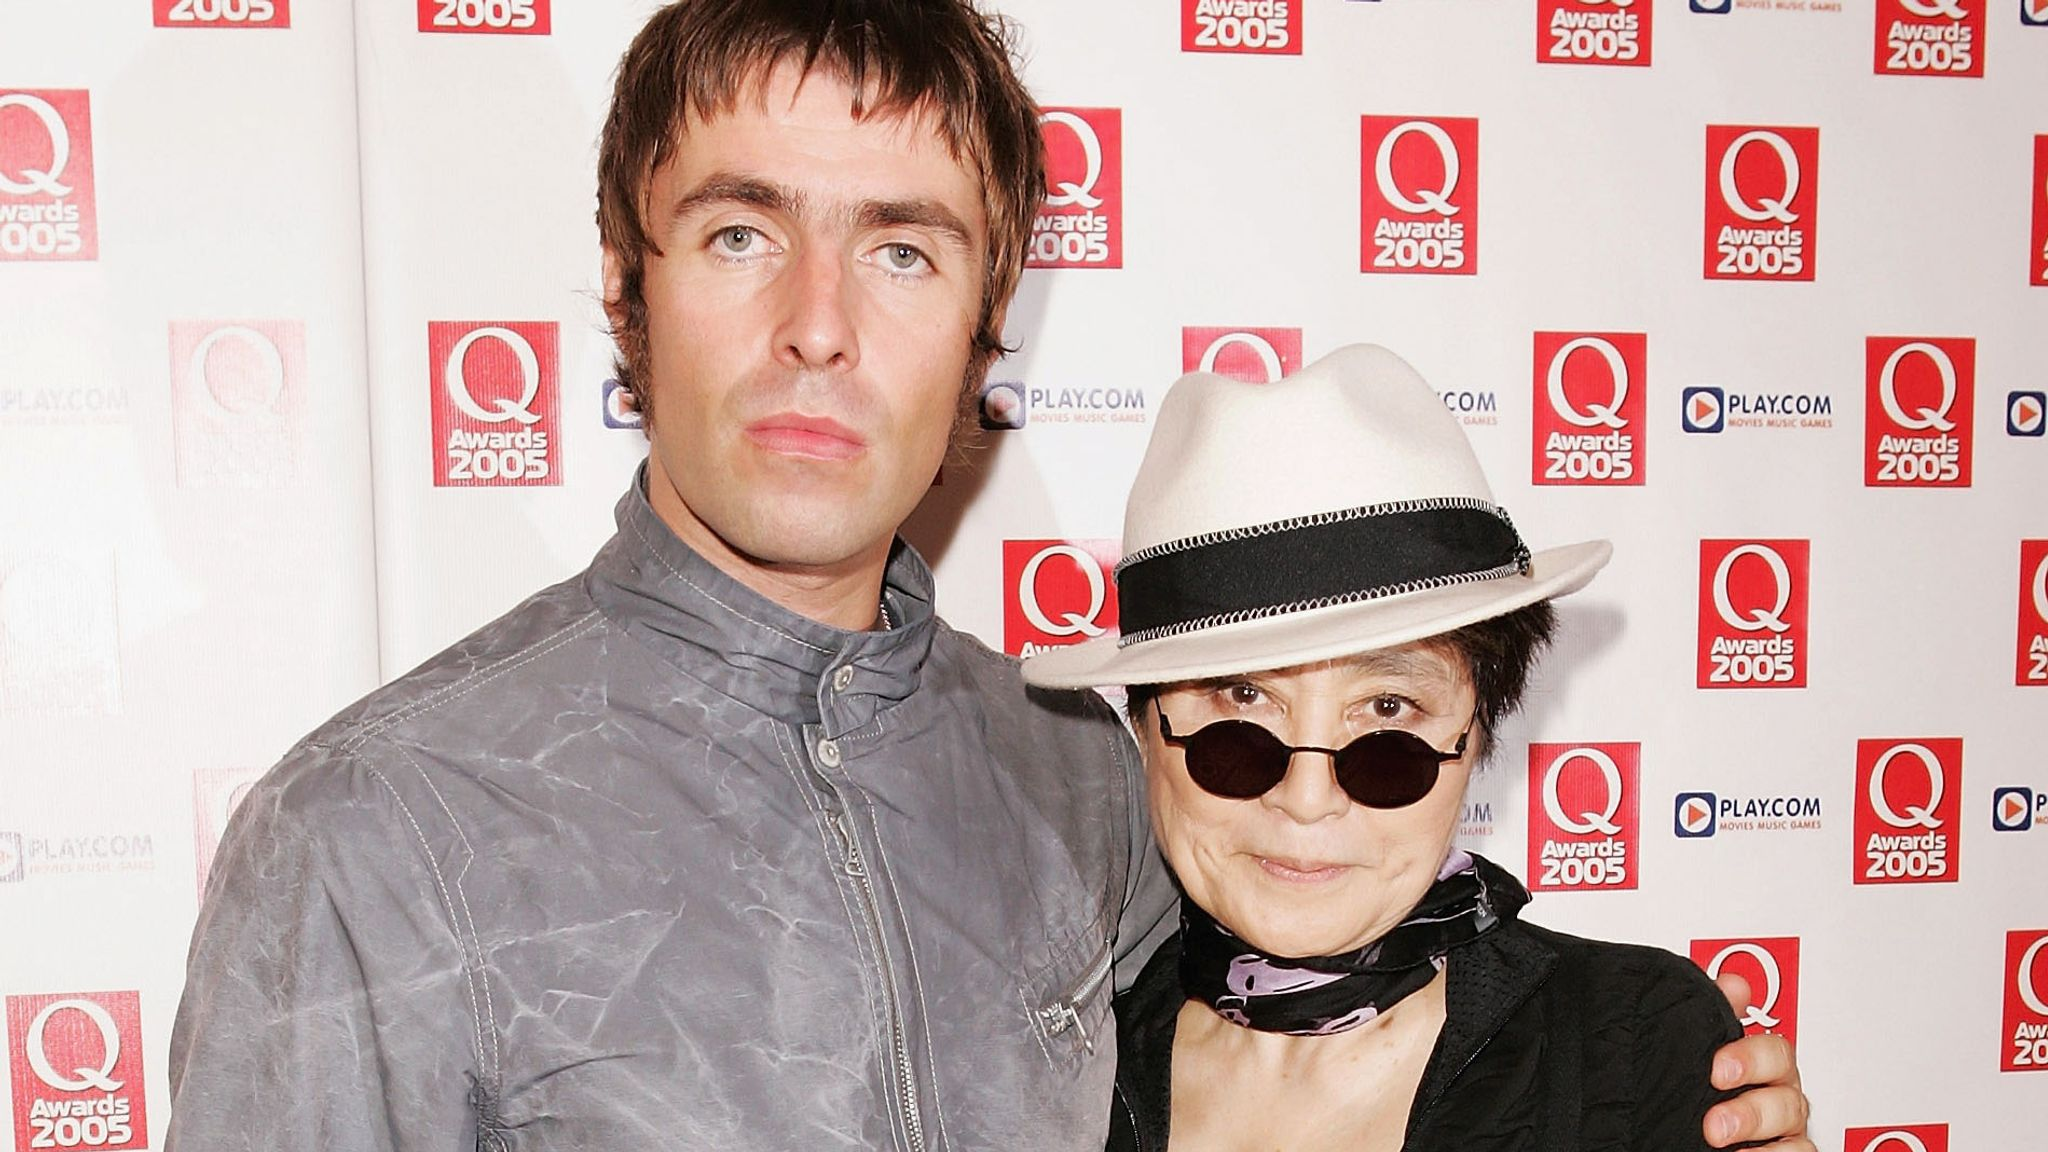 Oasis's Liam Gallagher poses with John Lennon's widow Yoko Ono at the Q Awards in 2005